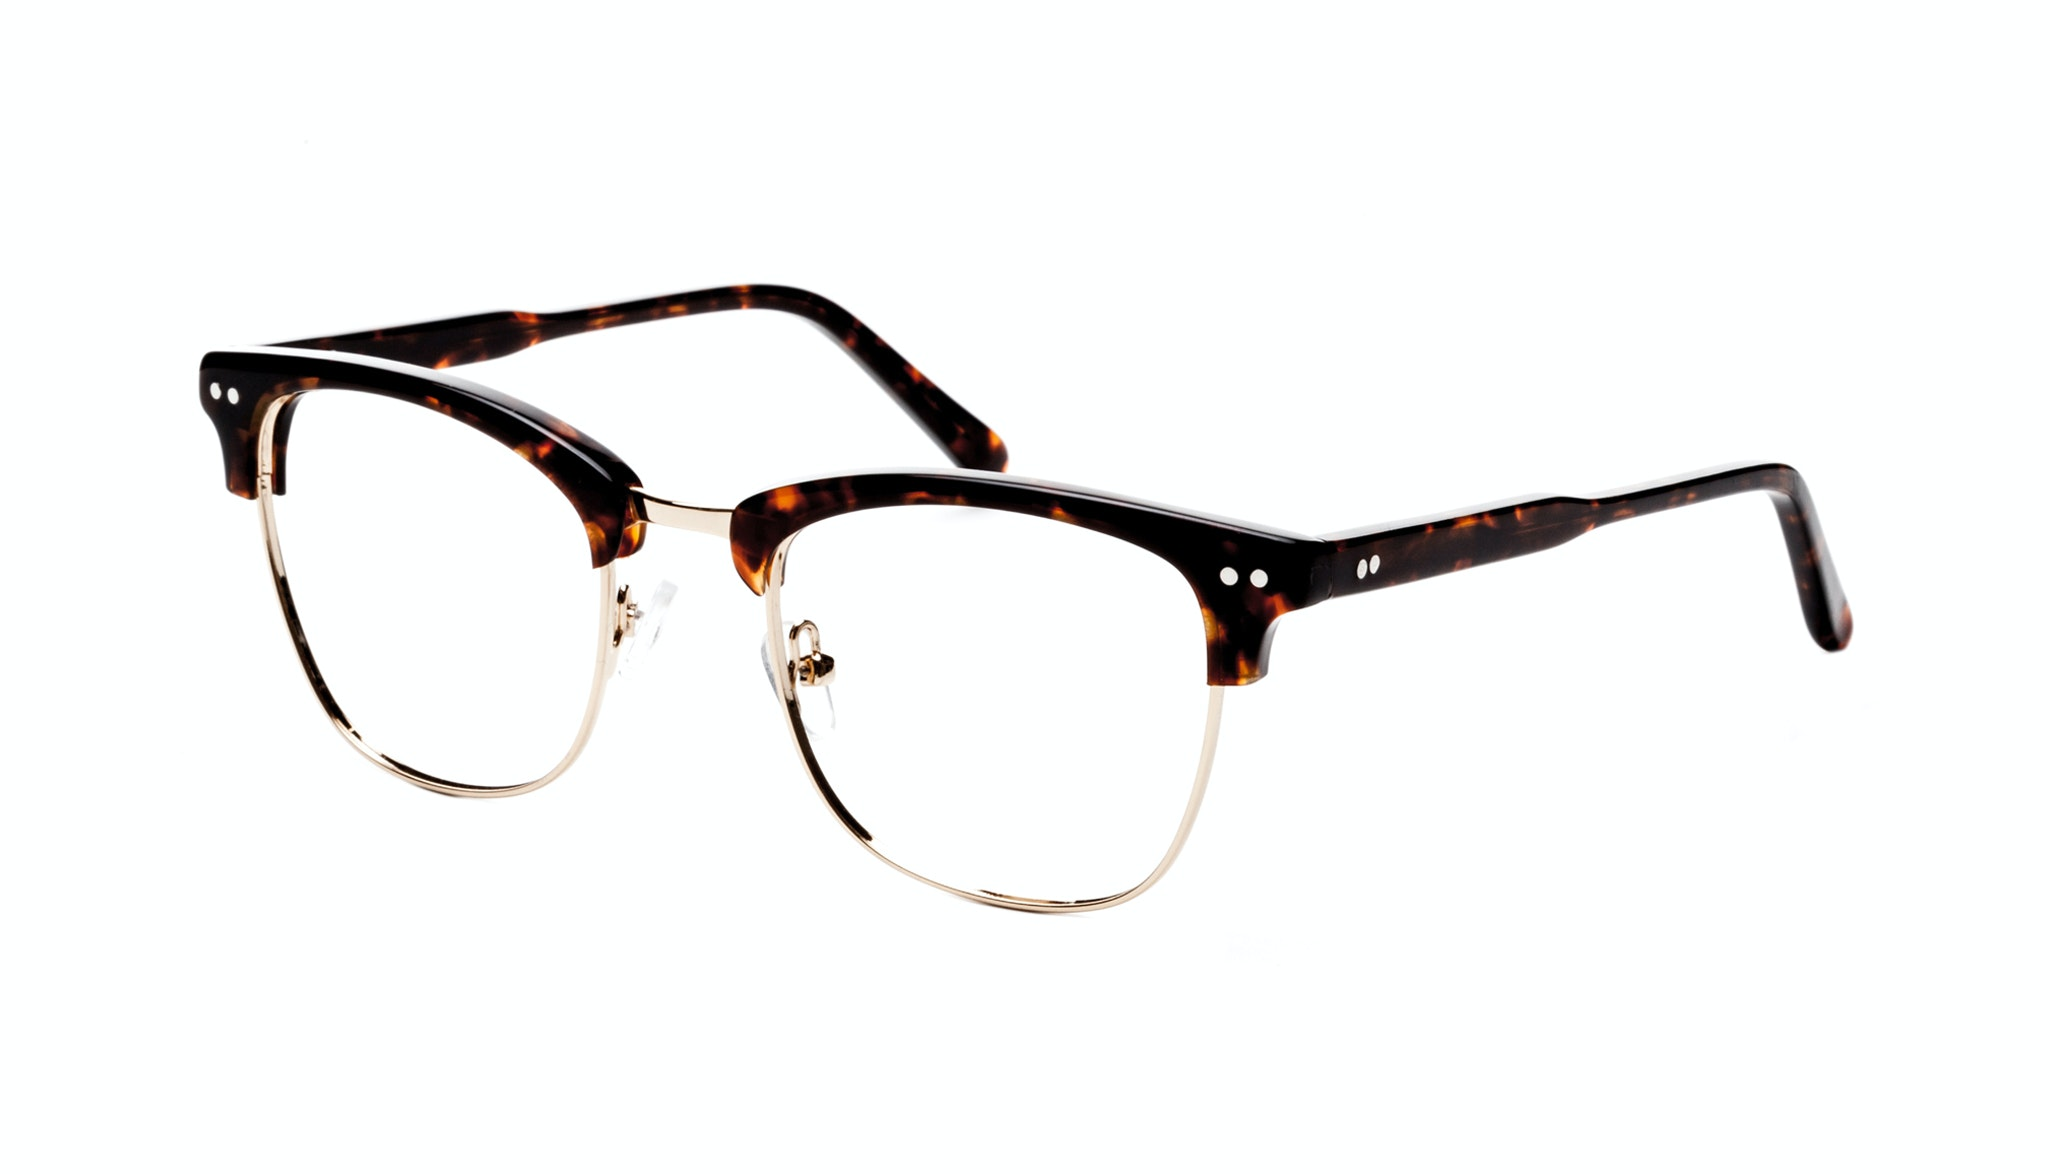 Affordable Fashion Glasses Square Eyeglasses Men Women Lift Gold Sepia Tilt